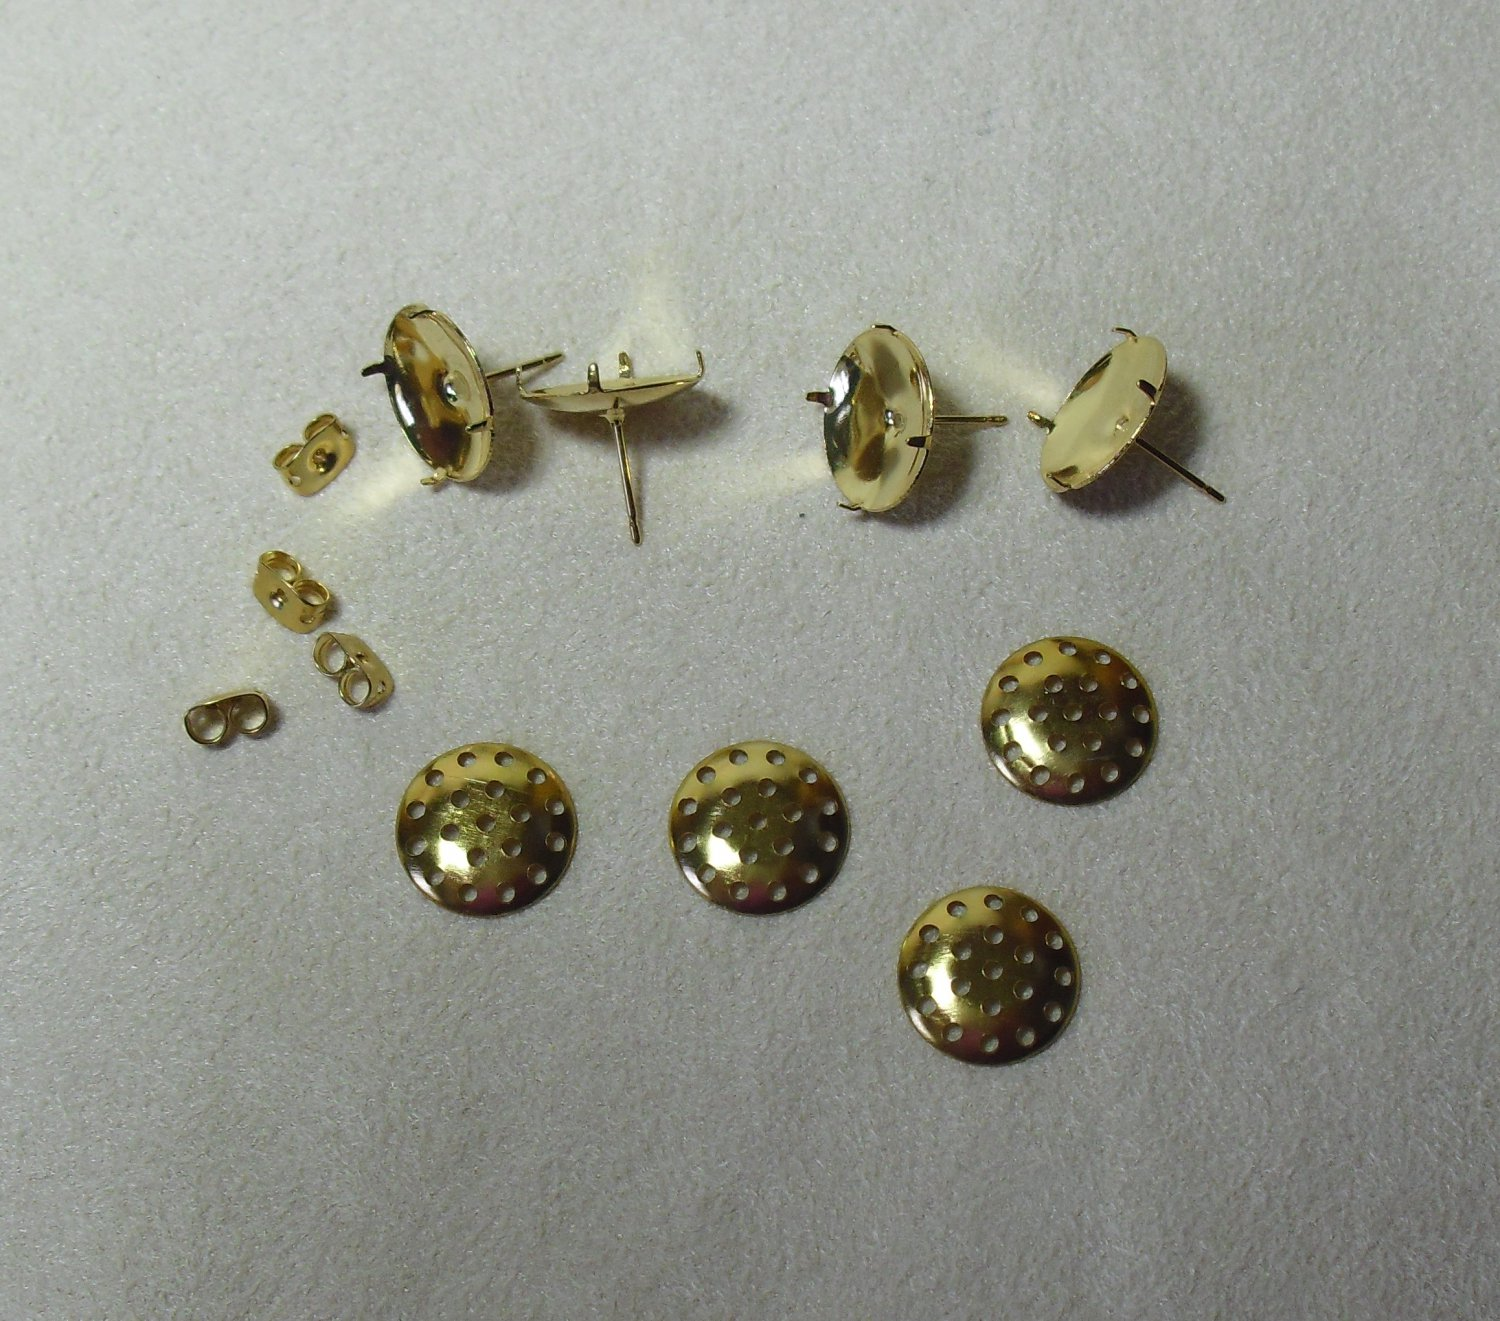 Gold-Plated Earrings Findings